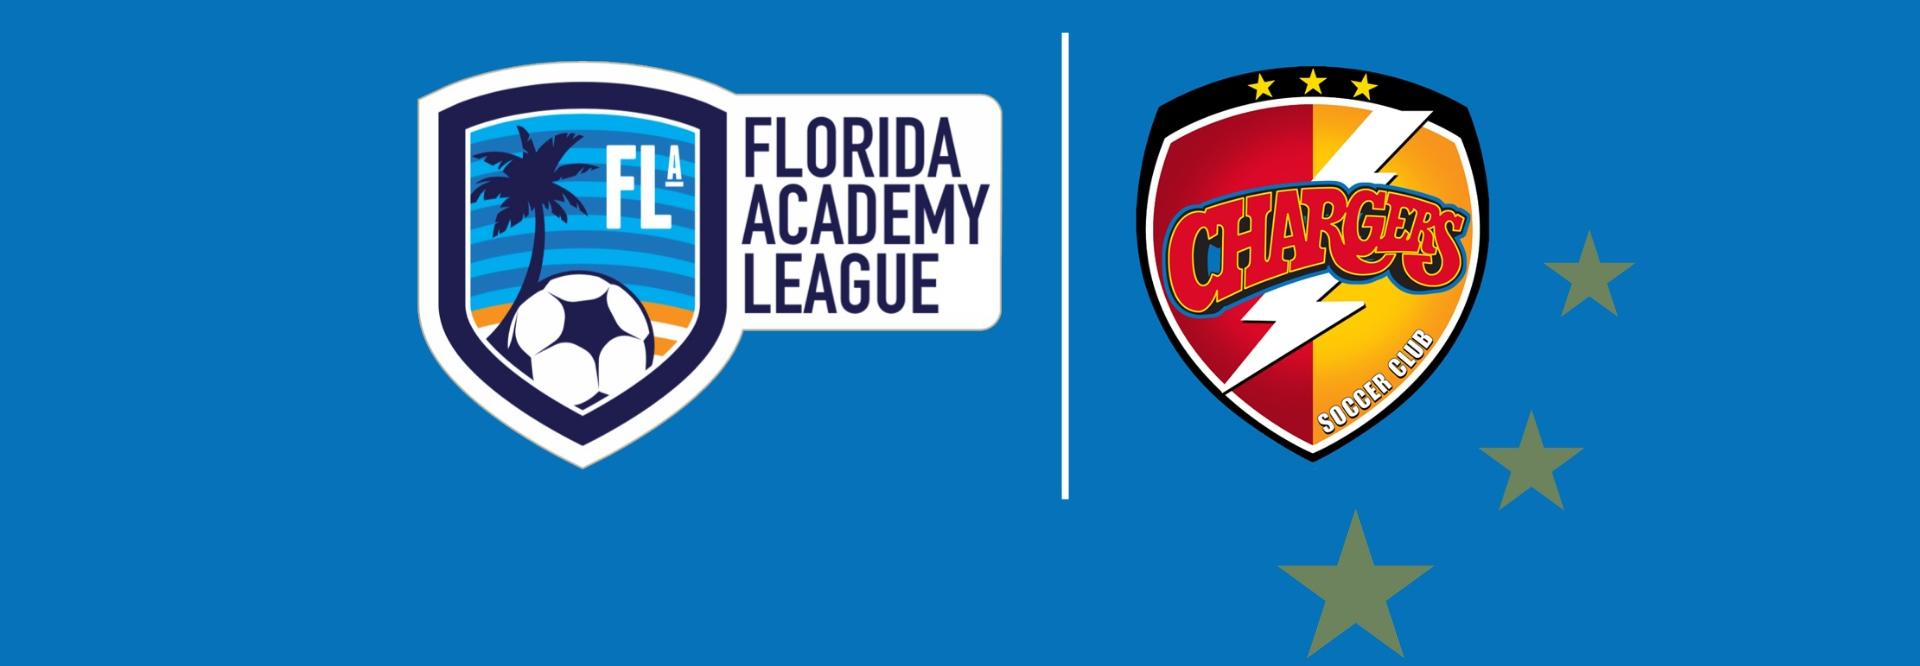 Florida Academy League Forms to Fill 12-U Need Among State's Top Clubs